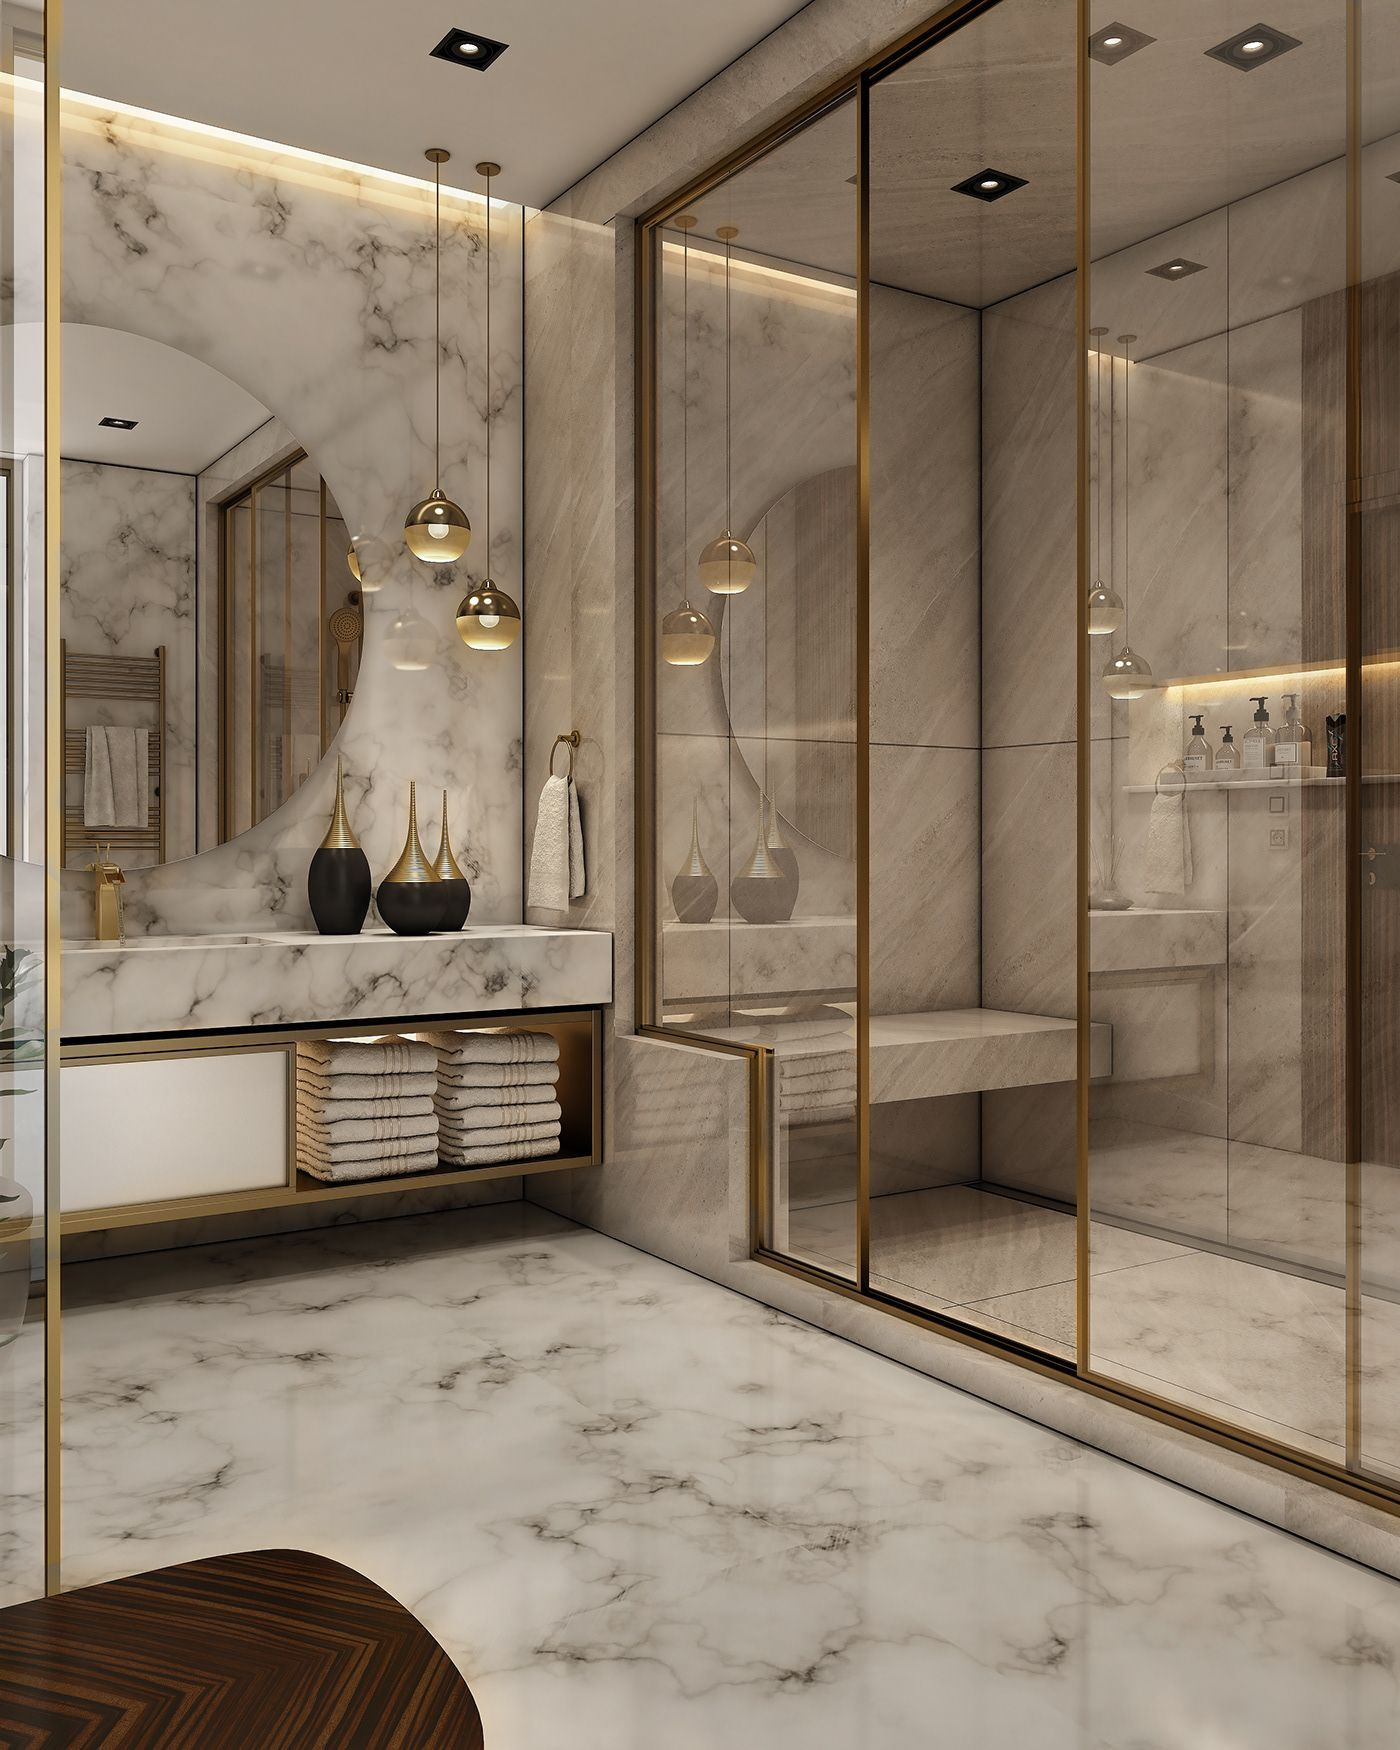 come to see the most luxury bathroom inspirations ever on modern functional bathroom design id=20353